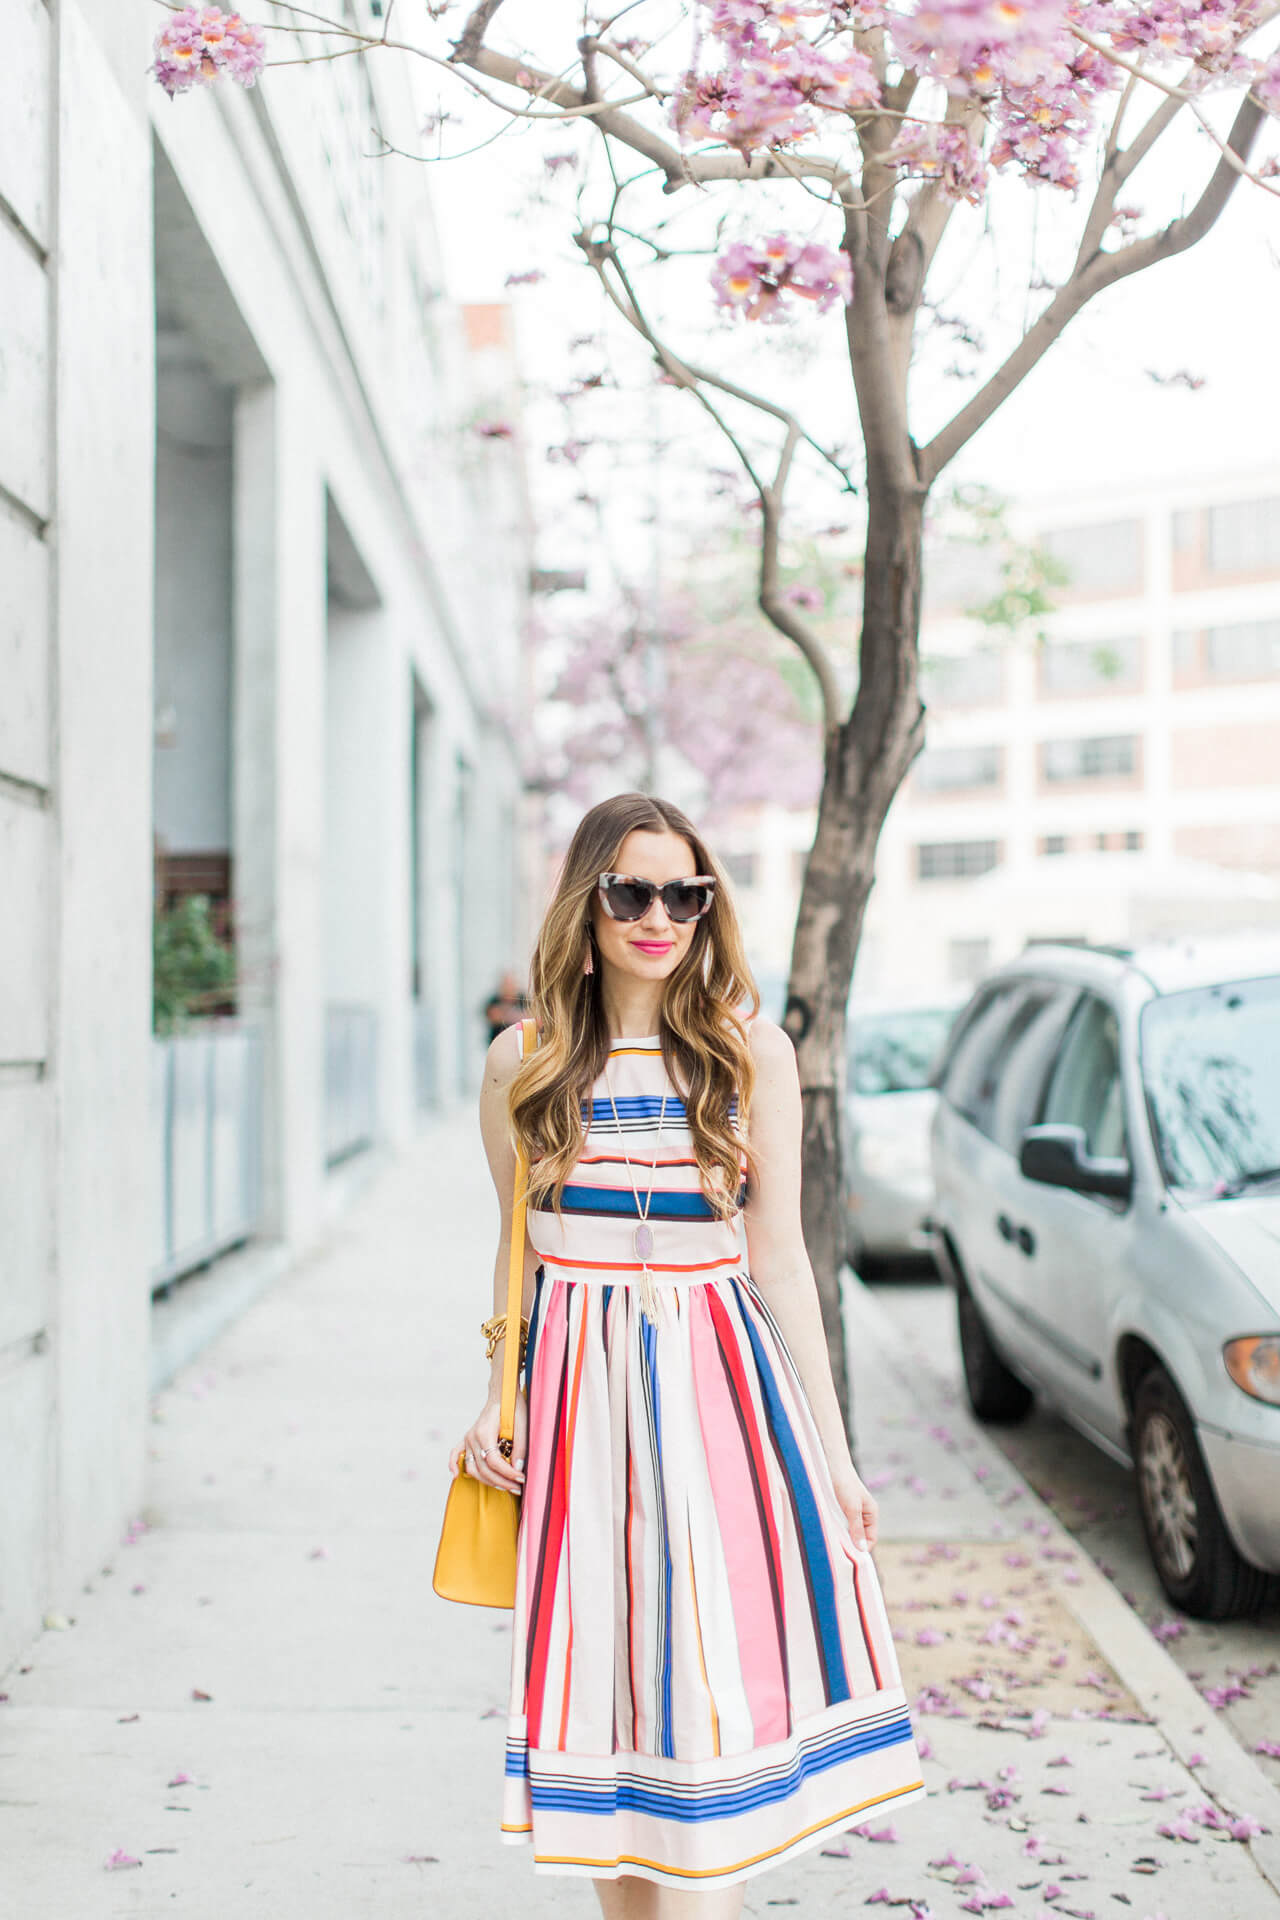 how fun is this colorful fit and flare striped dress?! - spring outfit inspiration!